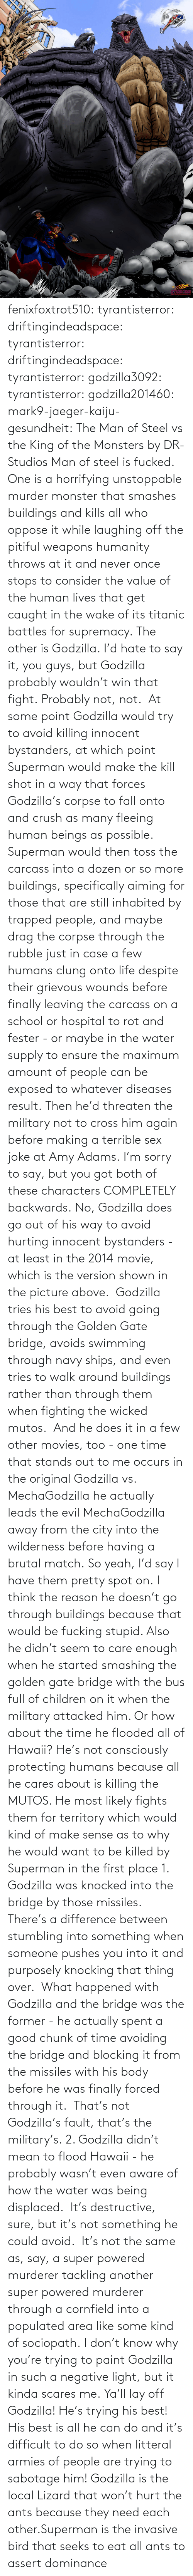 Children, Crush, and Fall: fenixfoxtrot510:  tyrantisterror: driftingindeadspace:  tyrantisterror:  driftingindeadspace:  tyrantisterror:  godzilla3092:  tyrantisterror:  godzilla201460:  mark9-jaeger-kaiju-gesundheit:  The Man of Steel vs the King of the Monsters by DR-Studios  Man of steel is fucked.  One is a horrifying unstoppable murder monster that smashes buildings and kills all who oppose it while laughing off the pitiful weapons humanity throws at it and never once stops to consider the value of the human lives that get caught in the wake of its titanic battles for supremacy. The other is Godzilla.  I'd hate to say it, you guys, but Godzilla probably wouldn't win that fight.  Probably not, not. At some point Godzilla would try to avoid killing innocent bystanders, at which point Superman would make the kill shot in a way that forces Godzilla's corpse to fall onto and crush as many fleeing human beings as possible. Superman would then toss the carcass into a dozen or so more buildings, specifically aiming for those that are still inhabited by trapped people, and maybe drag the corpse through the rubble just in case a few humans clung onto life despite their grievous wounds before finally leaving the carcass on a school or hospital to rot and fester - or maybe in the water supply to ensure the maximum amount of people can be exposed to whatever diseases result. Then he'd threaten the military not to cross him again before making a terrible sex joke at Amy Adams.  I'm sorry to say, but you got both of these characters COMPLETELY backwards.  No, Godzilla does go out of his way to avoid hurting innocent bystanders - at least in the 2014 movie, which is the version shown in the picture above. Godzilla tries his best to avoid going through the Golden Gate bridge, avoids swimming through navy ships, and even tries to walk around buildings rather than through them when fighting the wicked mutos. And he does it in a few other movies, too - one time that stands out to